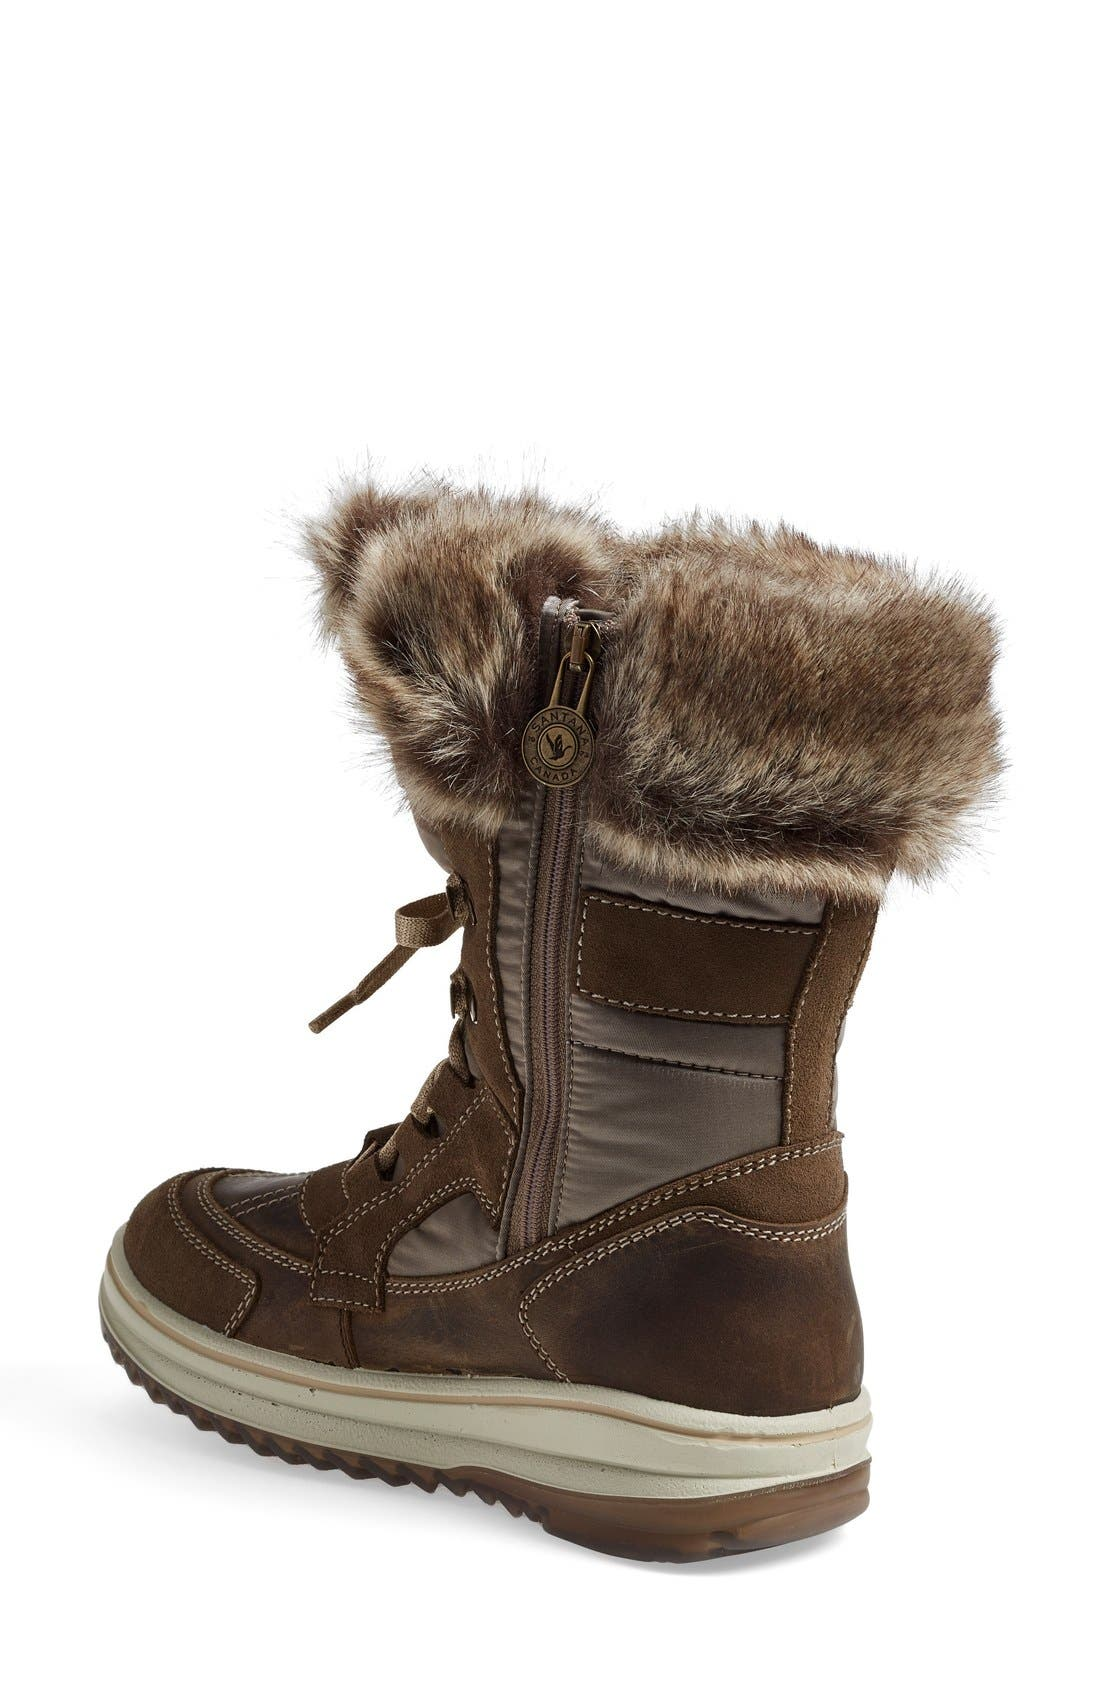 'Marta' Water Resistant Insulated Winter Boot,                             Alternate thumbnail 2, color,                             236